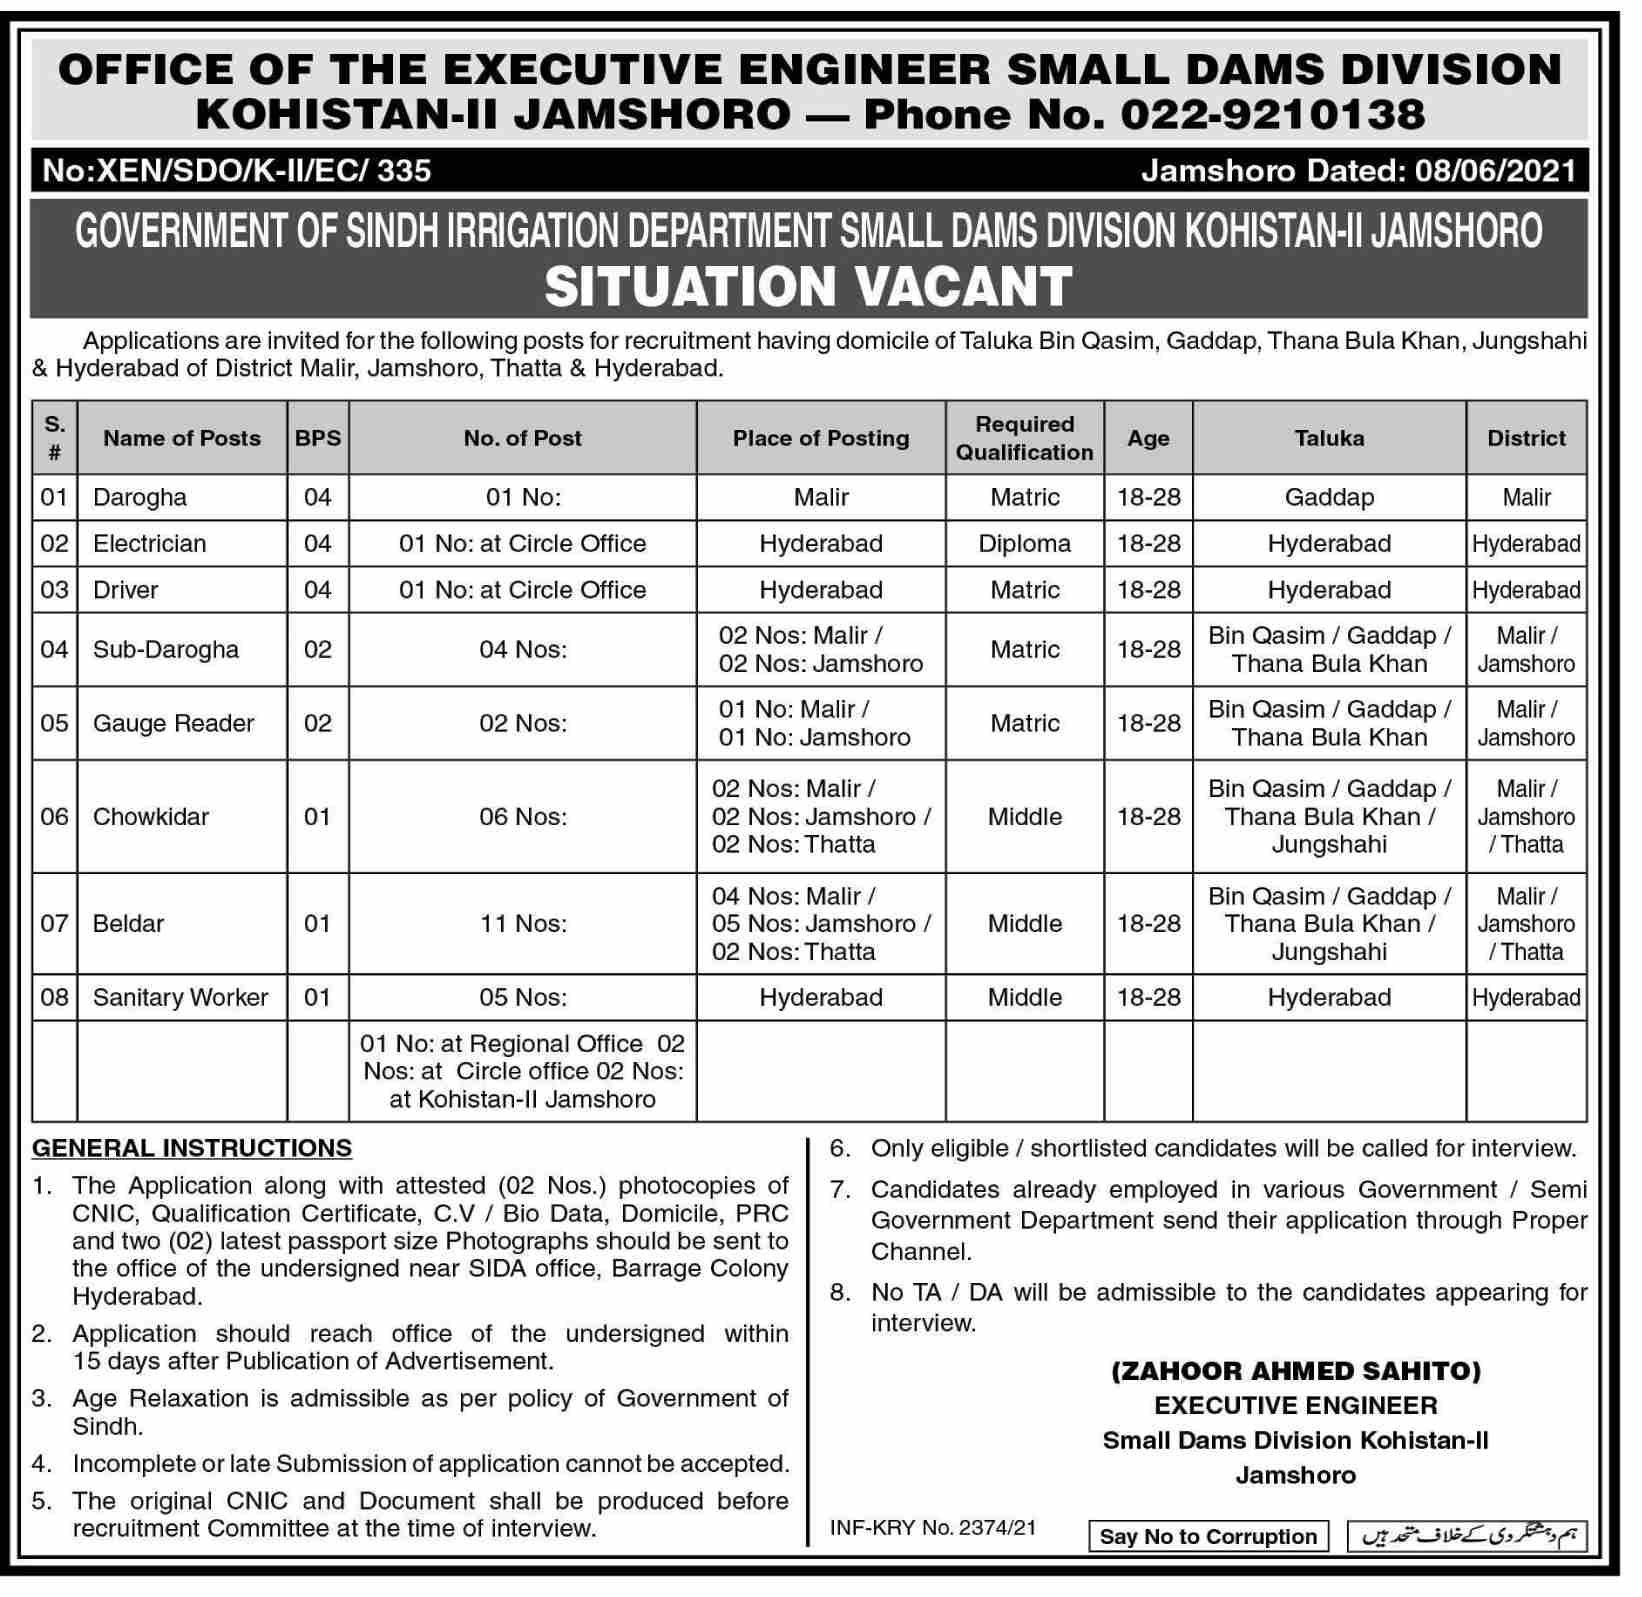 Executive Engineer Office Small Dams Division Jamshoro Jobs 2021 in Pakistan